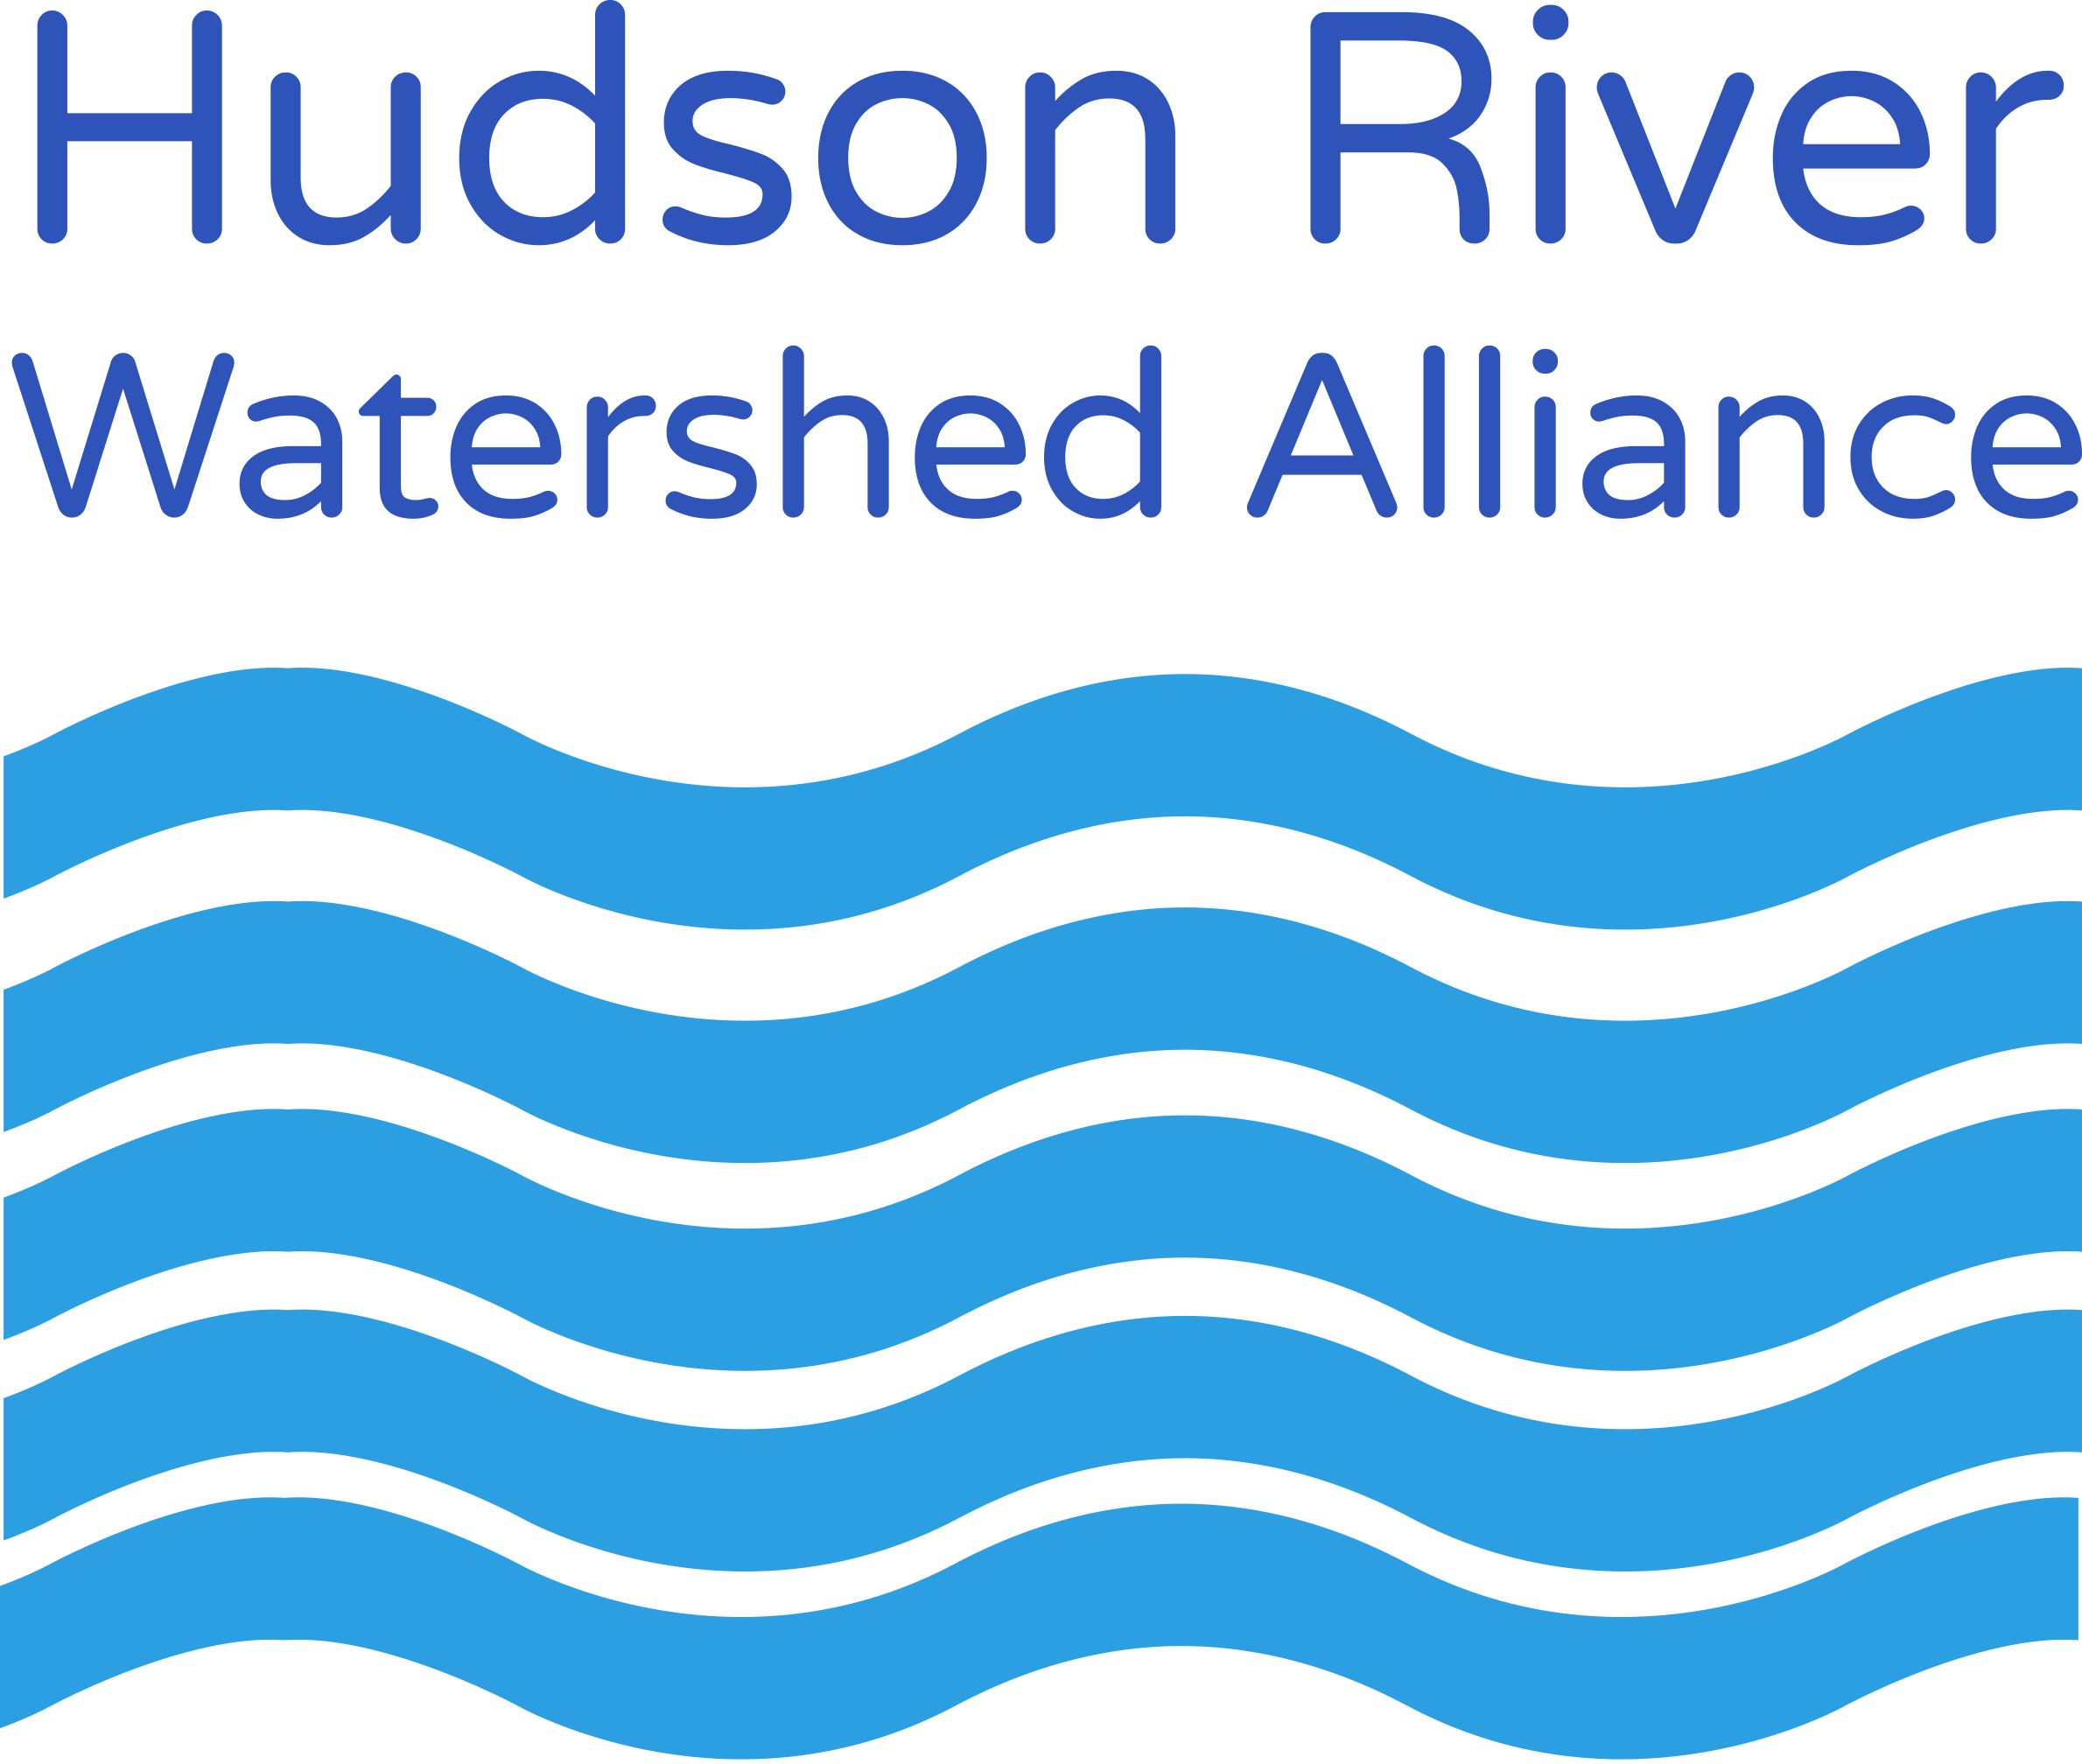 cropped-hudson-river-logo_source.png